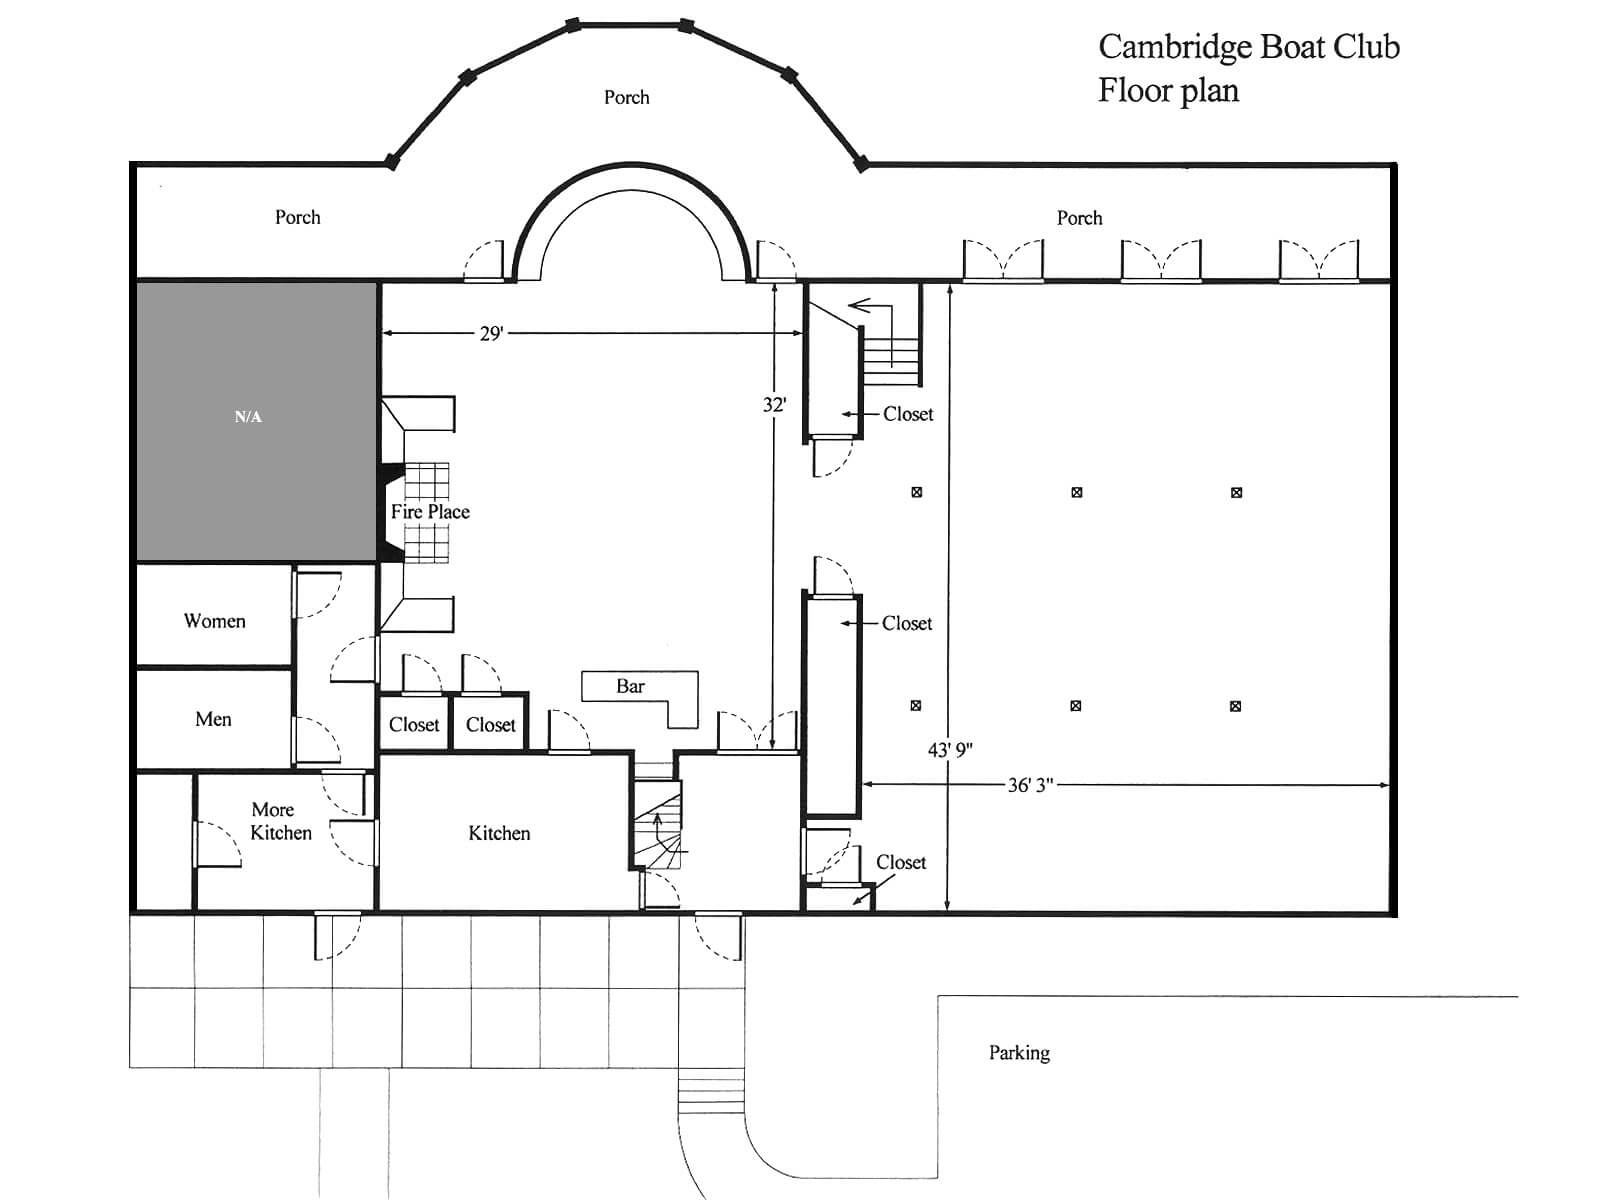 Floor Layout Of Floor Plan Of The Cambridge Boat Club Cambridge Boat Club